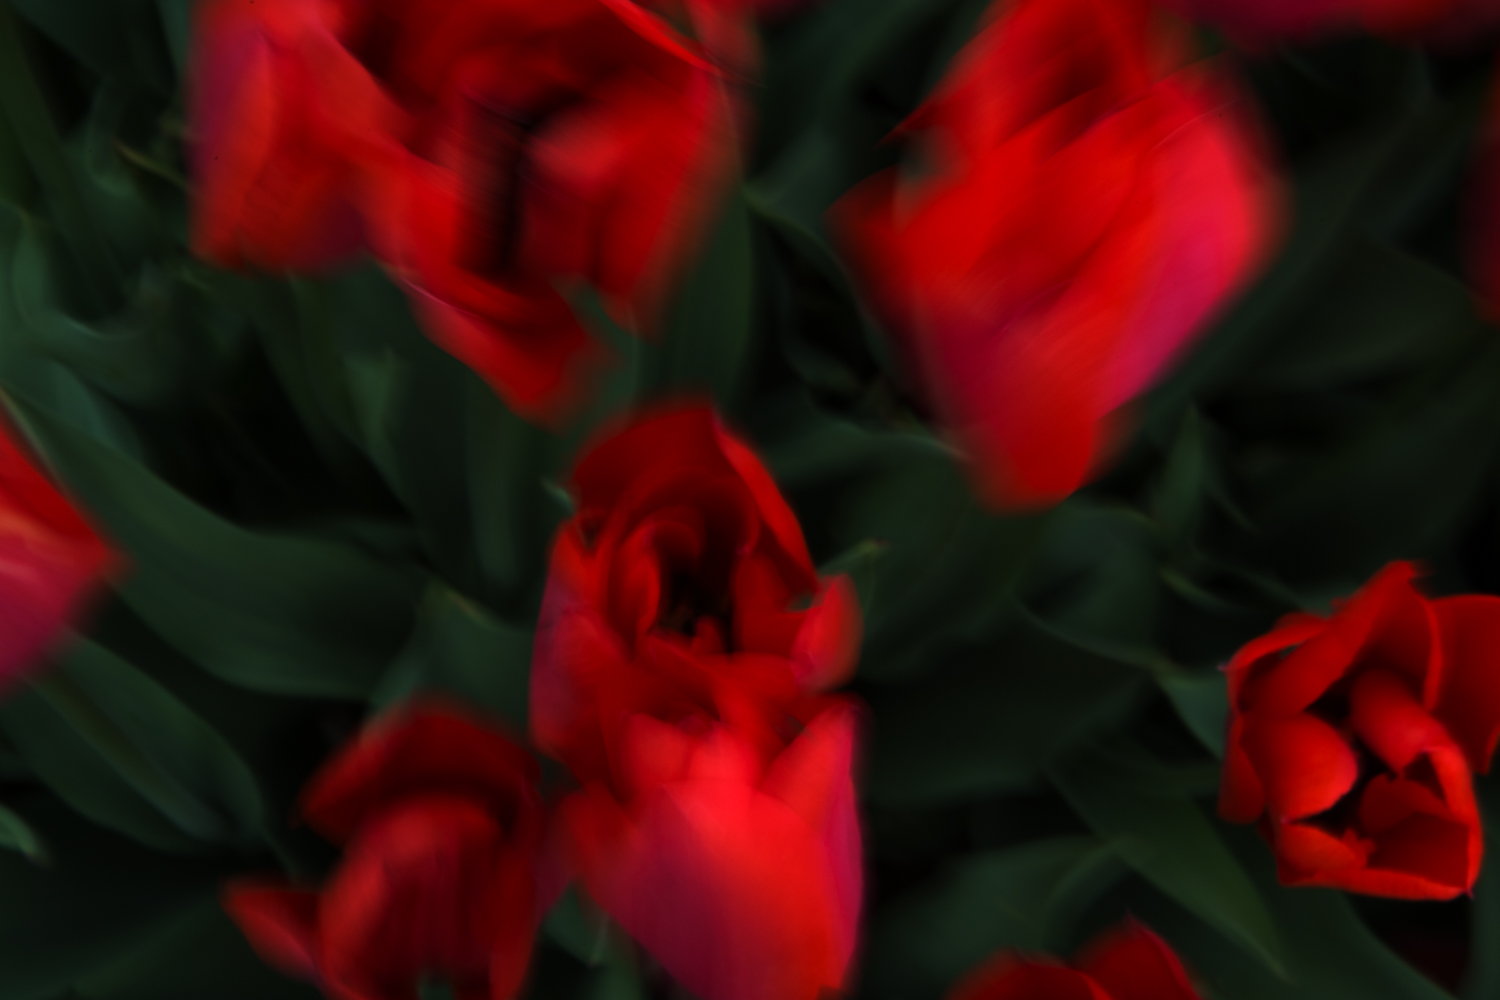 Red Tulips, No. 1